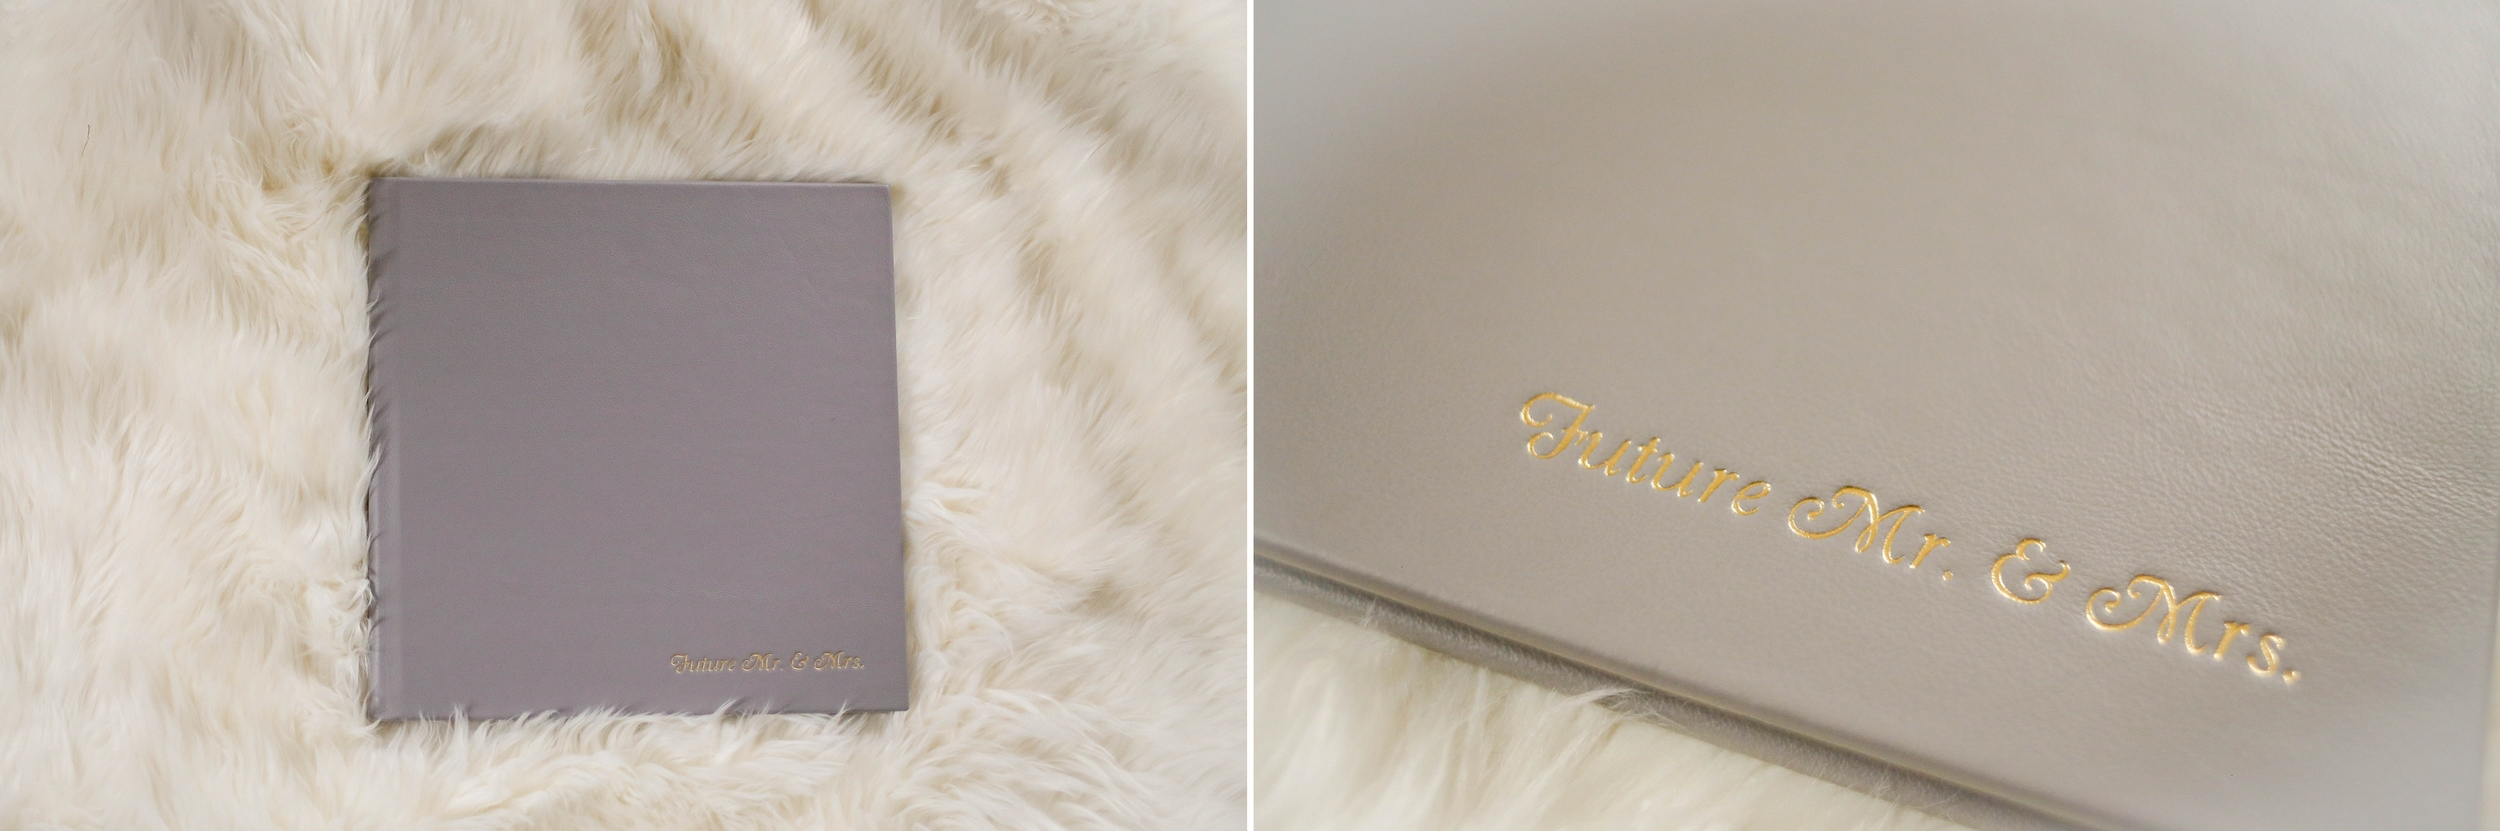 Gray leather album.  All albums can have custom engraving  on them.